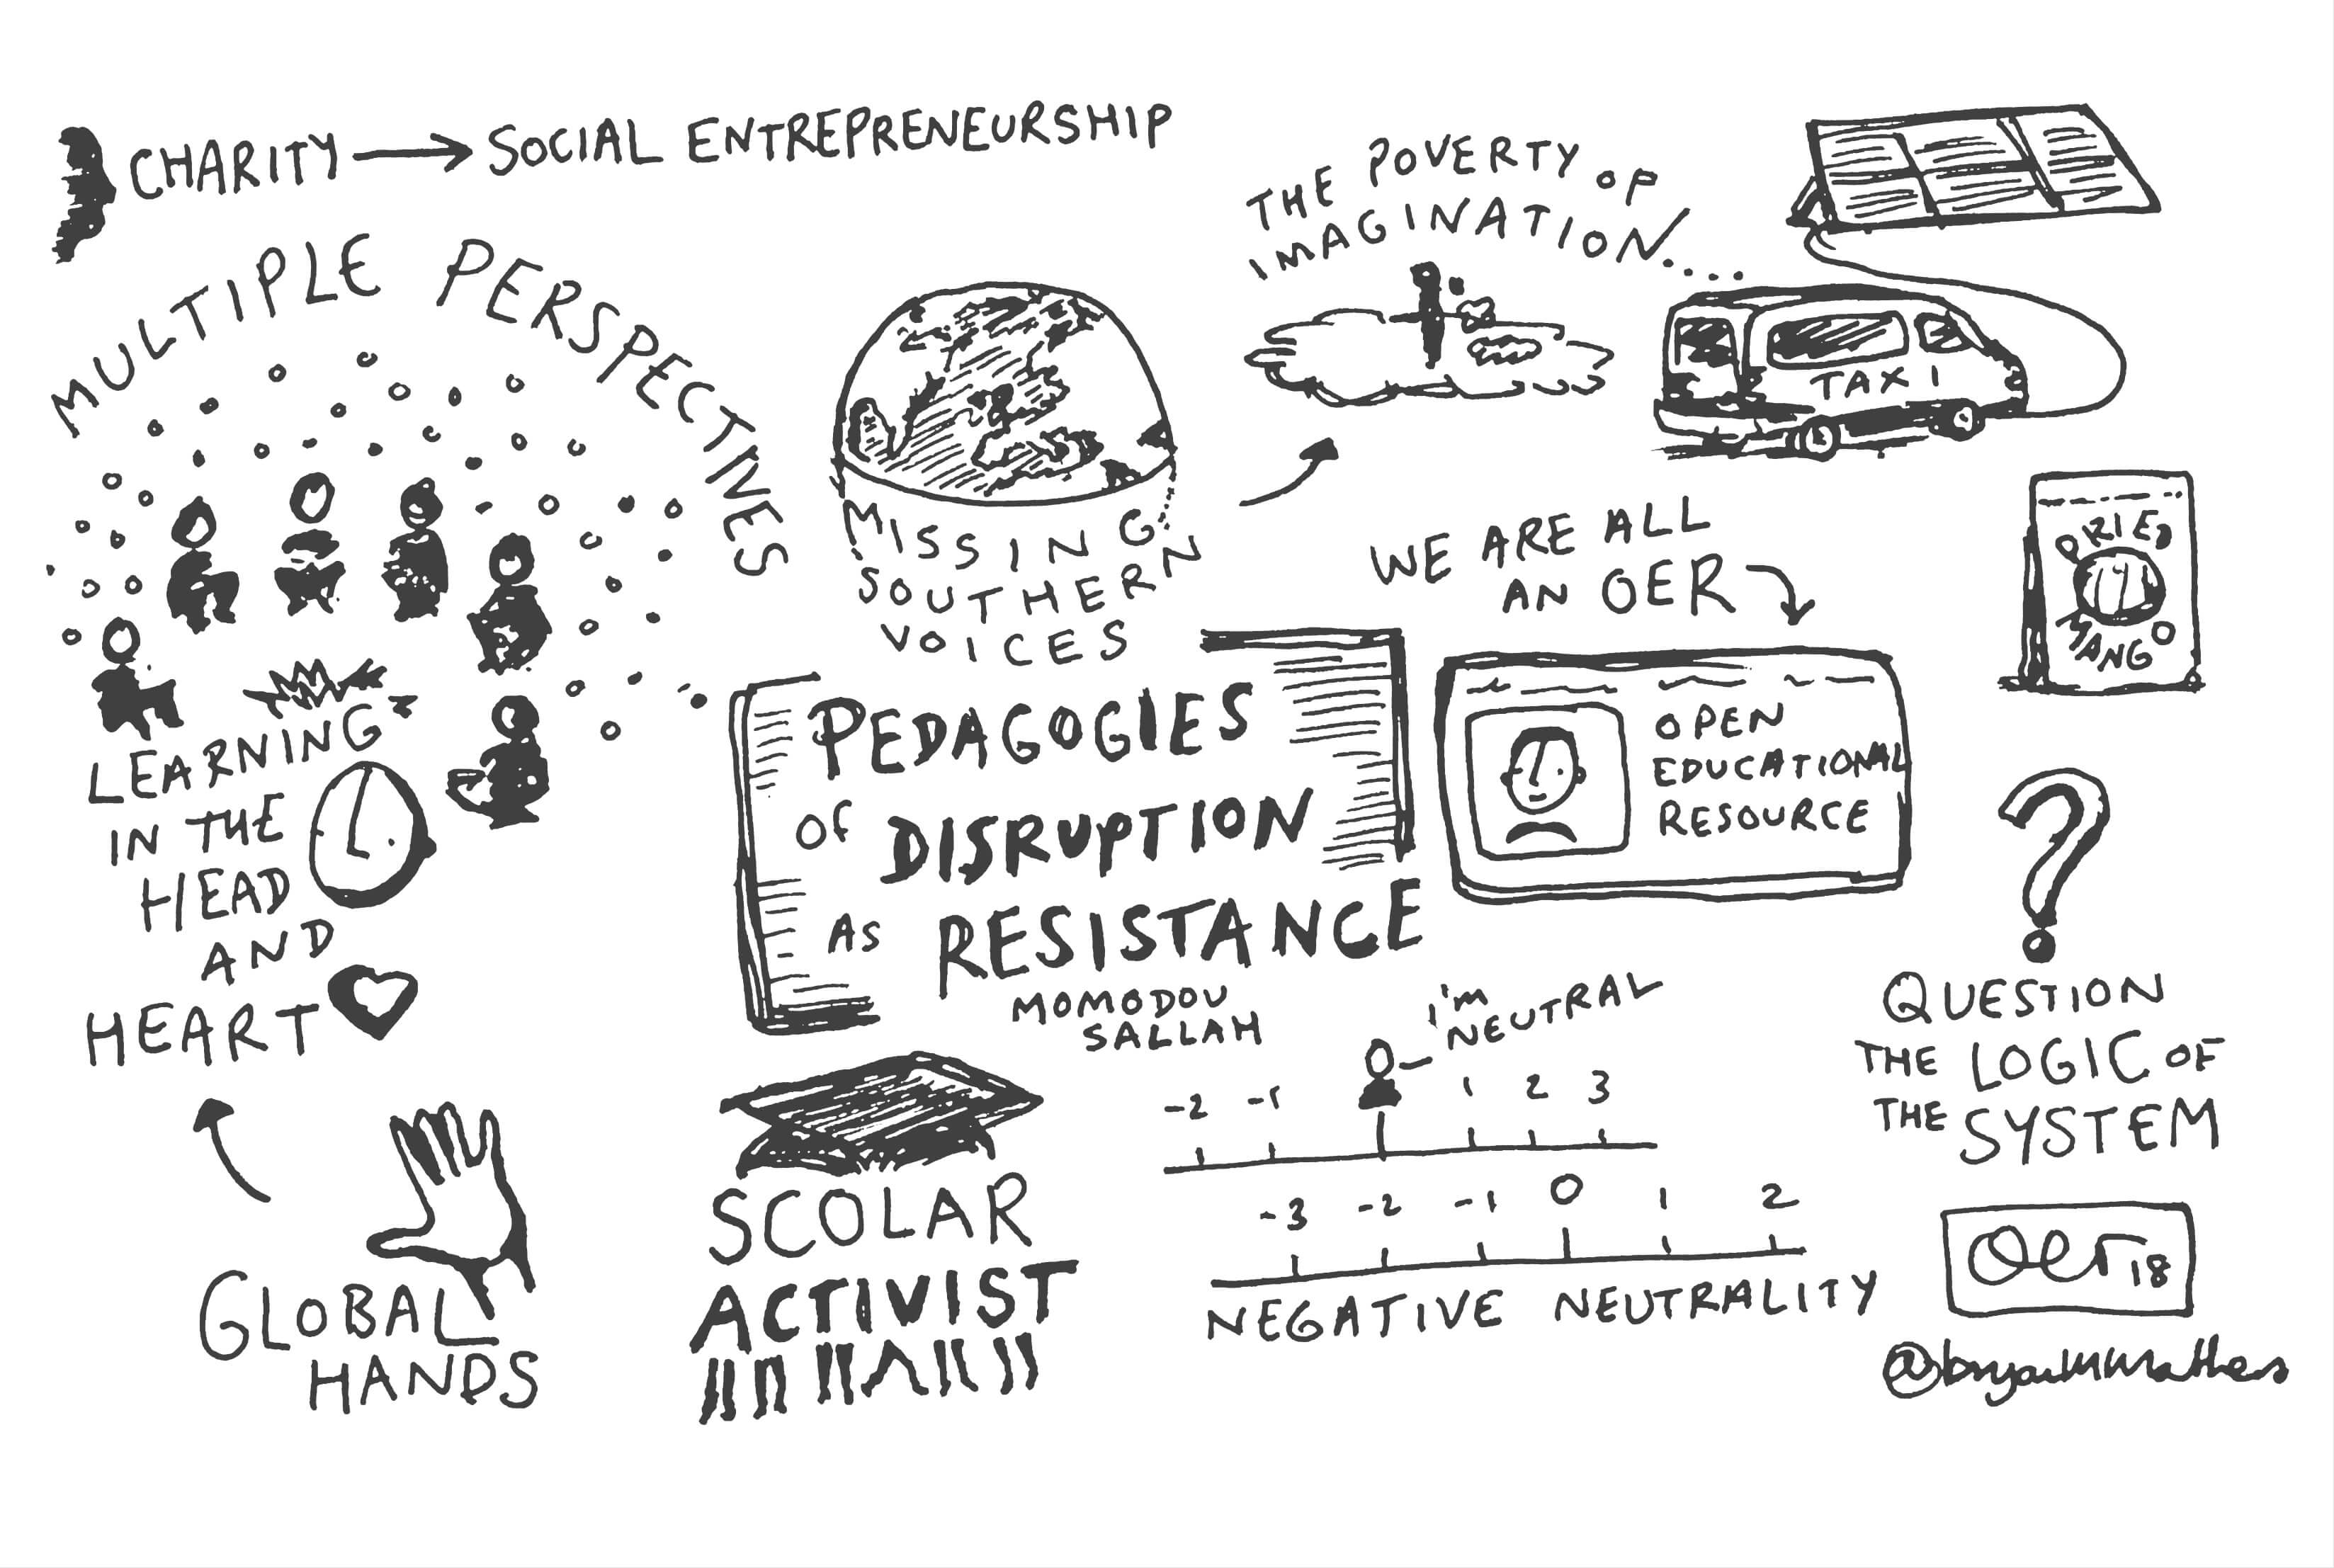 Pedagogies of Disruption as Resistance